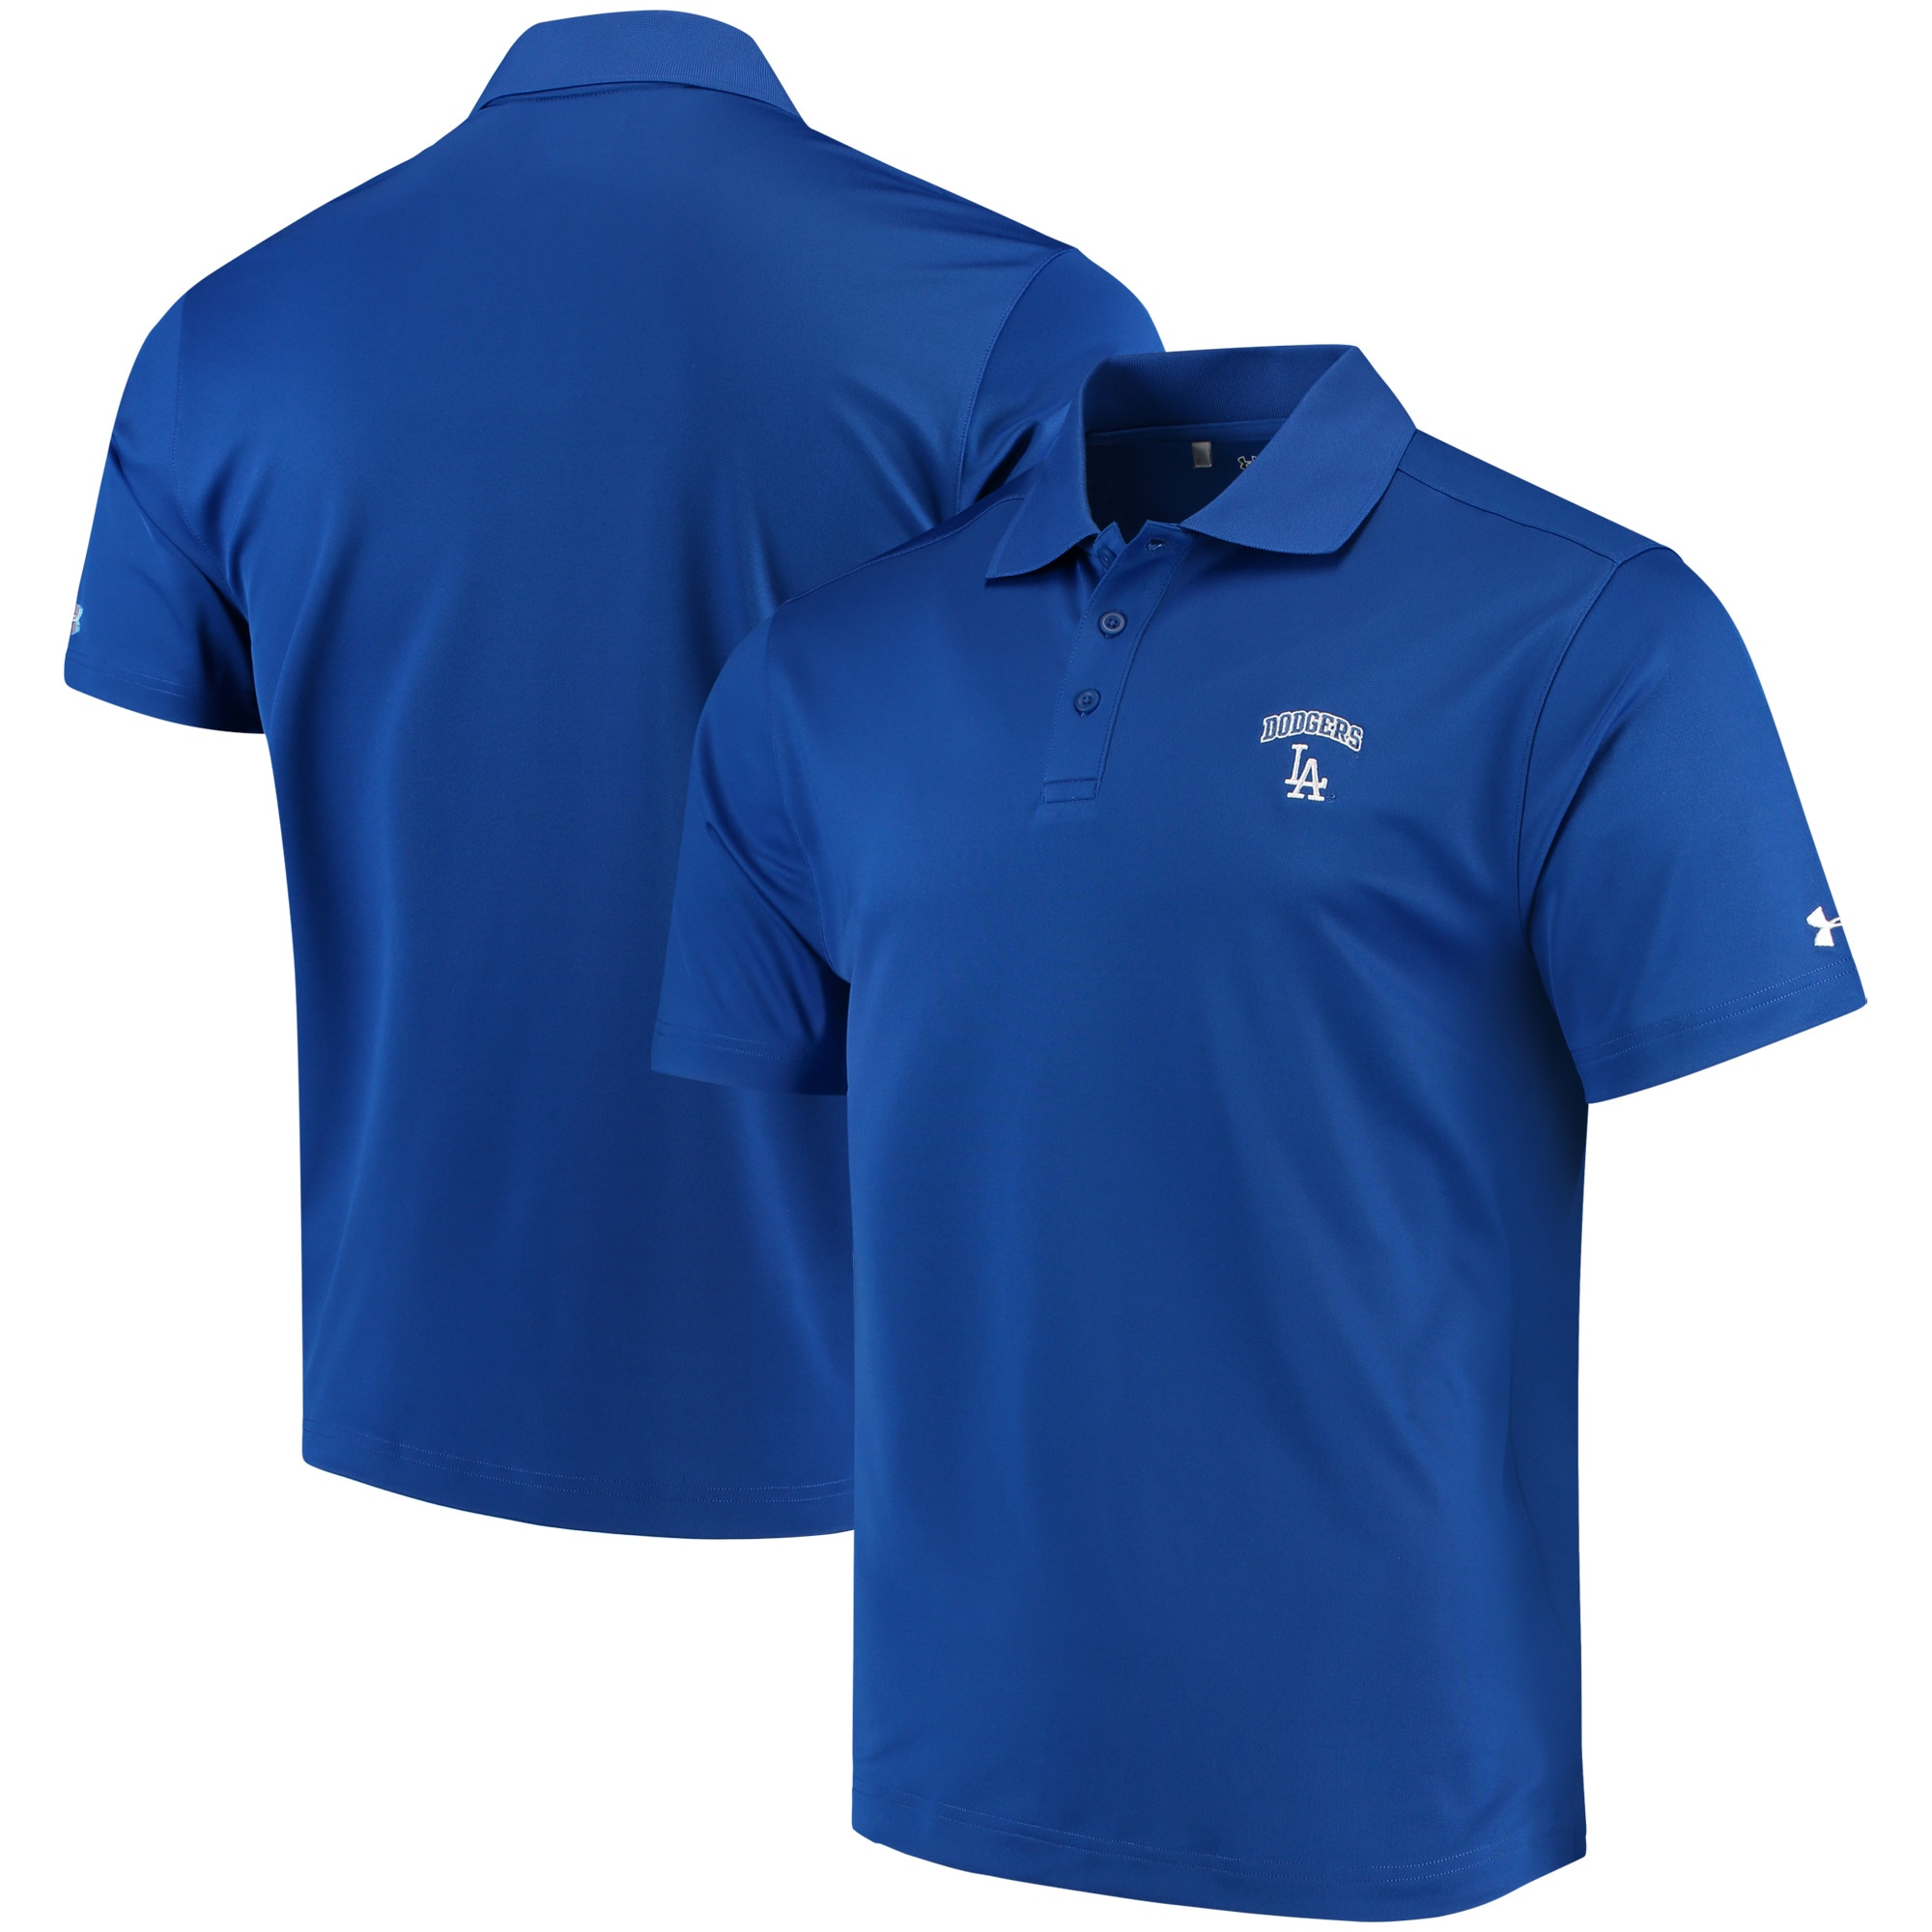 Los Angeles Dodgers Under Armour Performance Polo - Royal